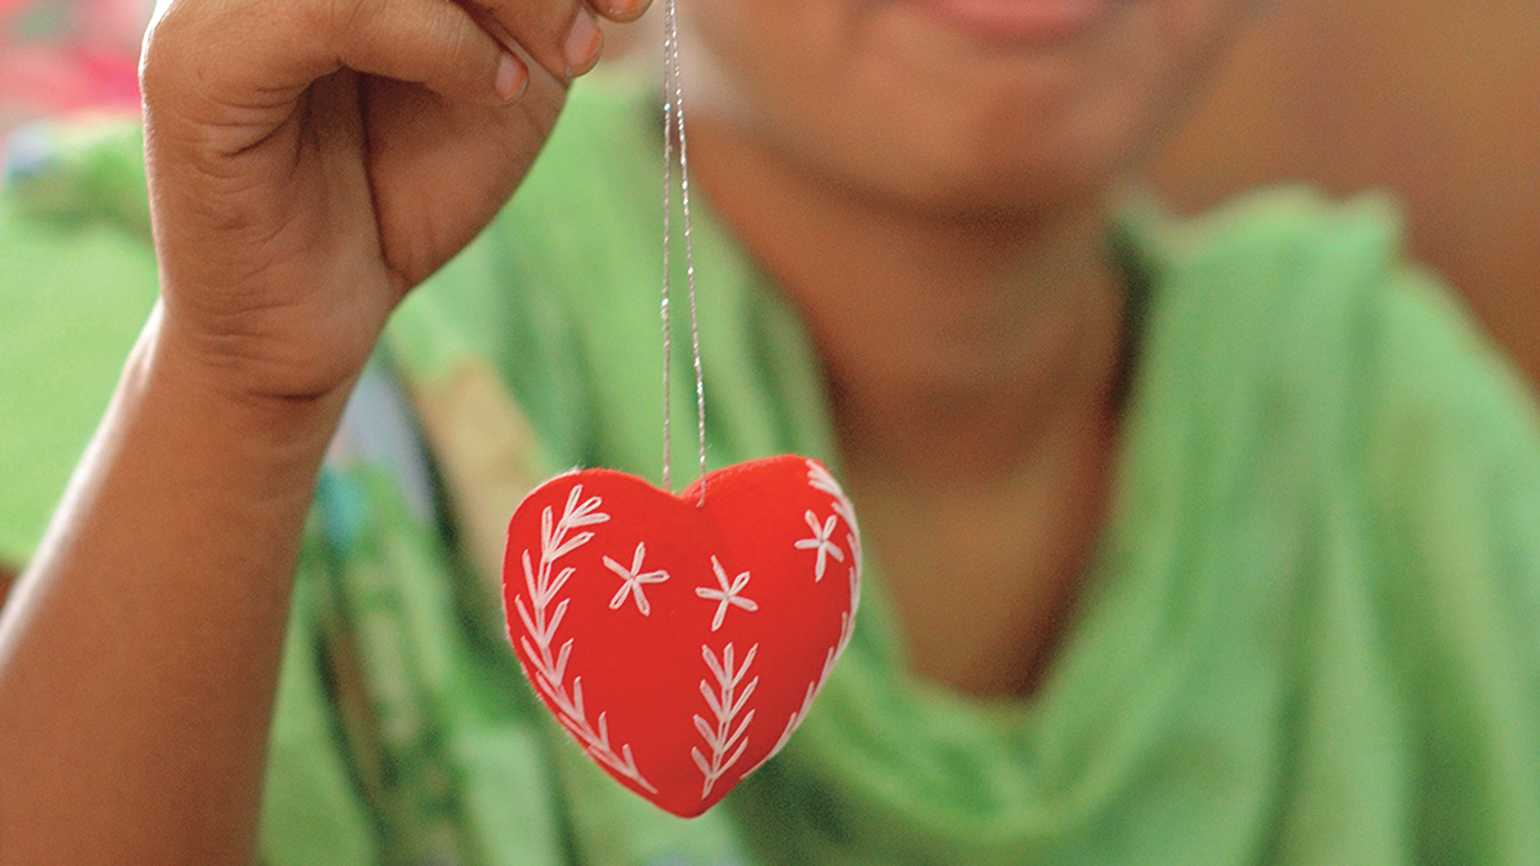 A young woman displays the red heart she has made